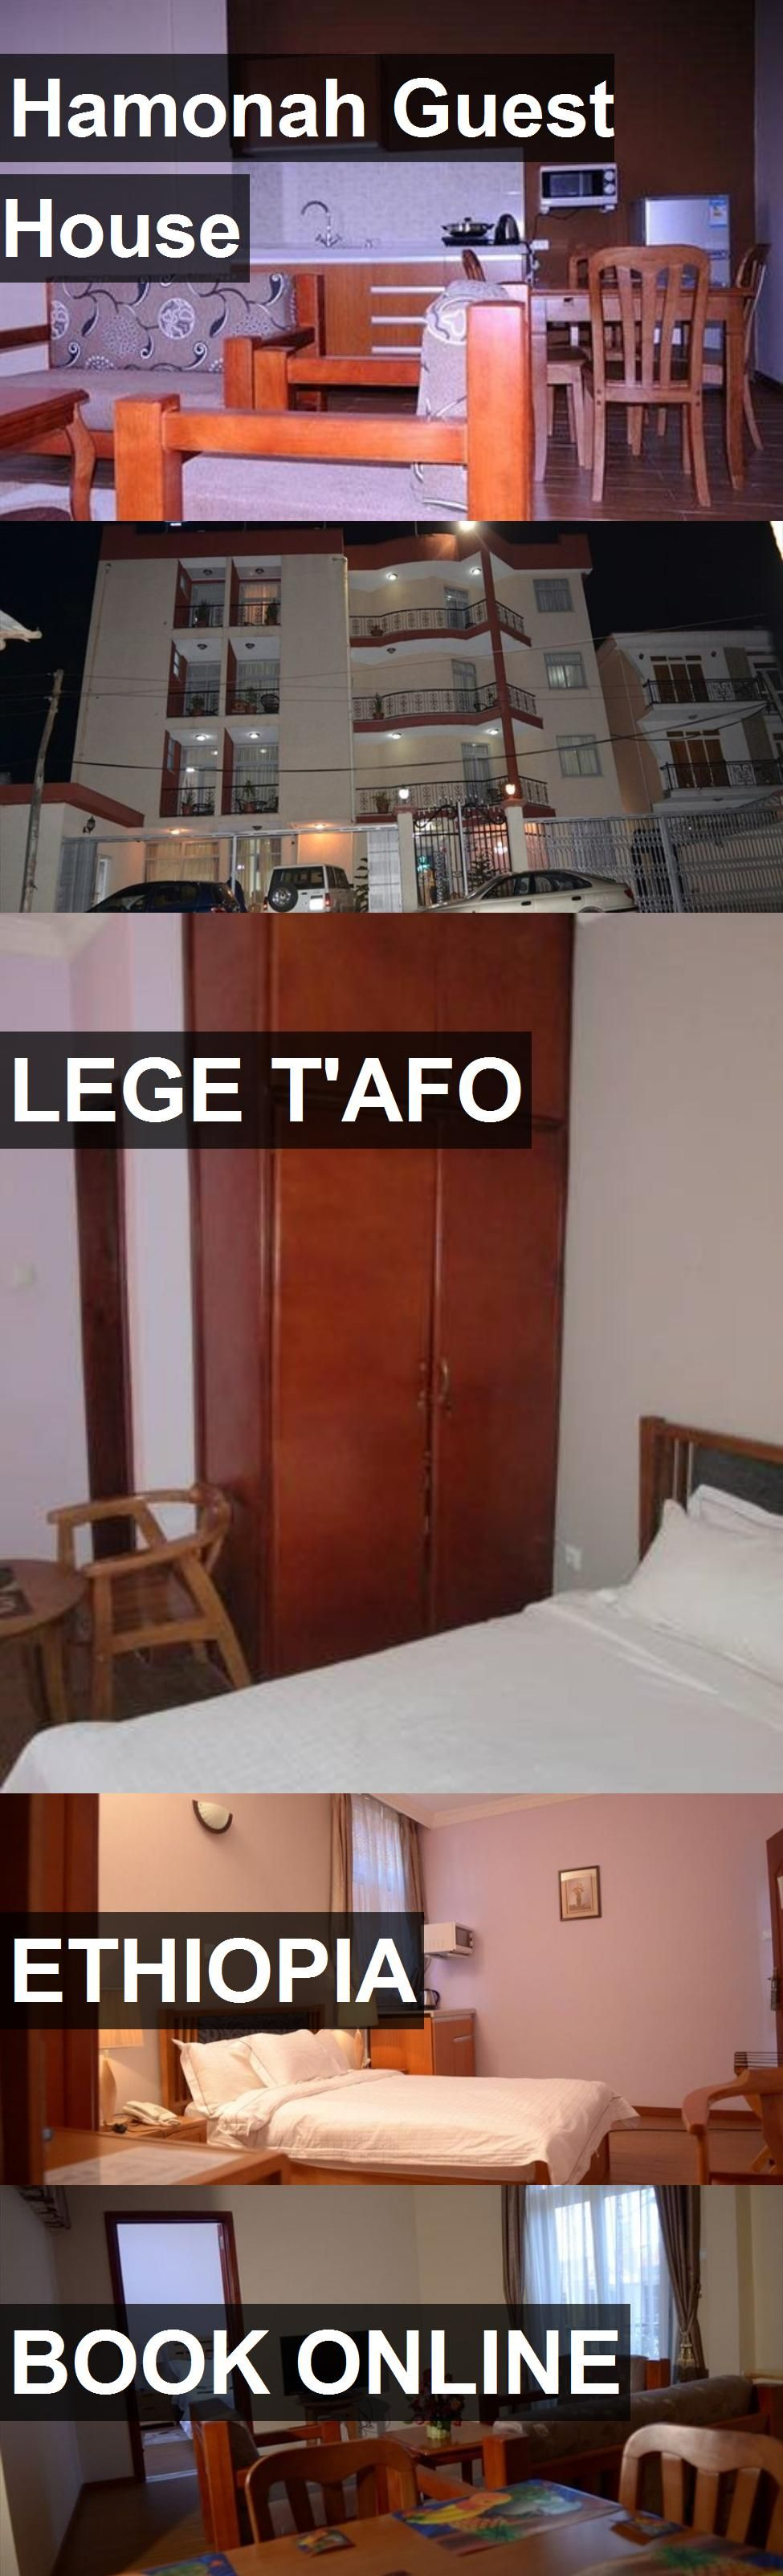 Hamonah guest house in lege tuafo ethiopia for more information